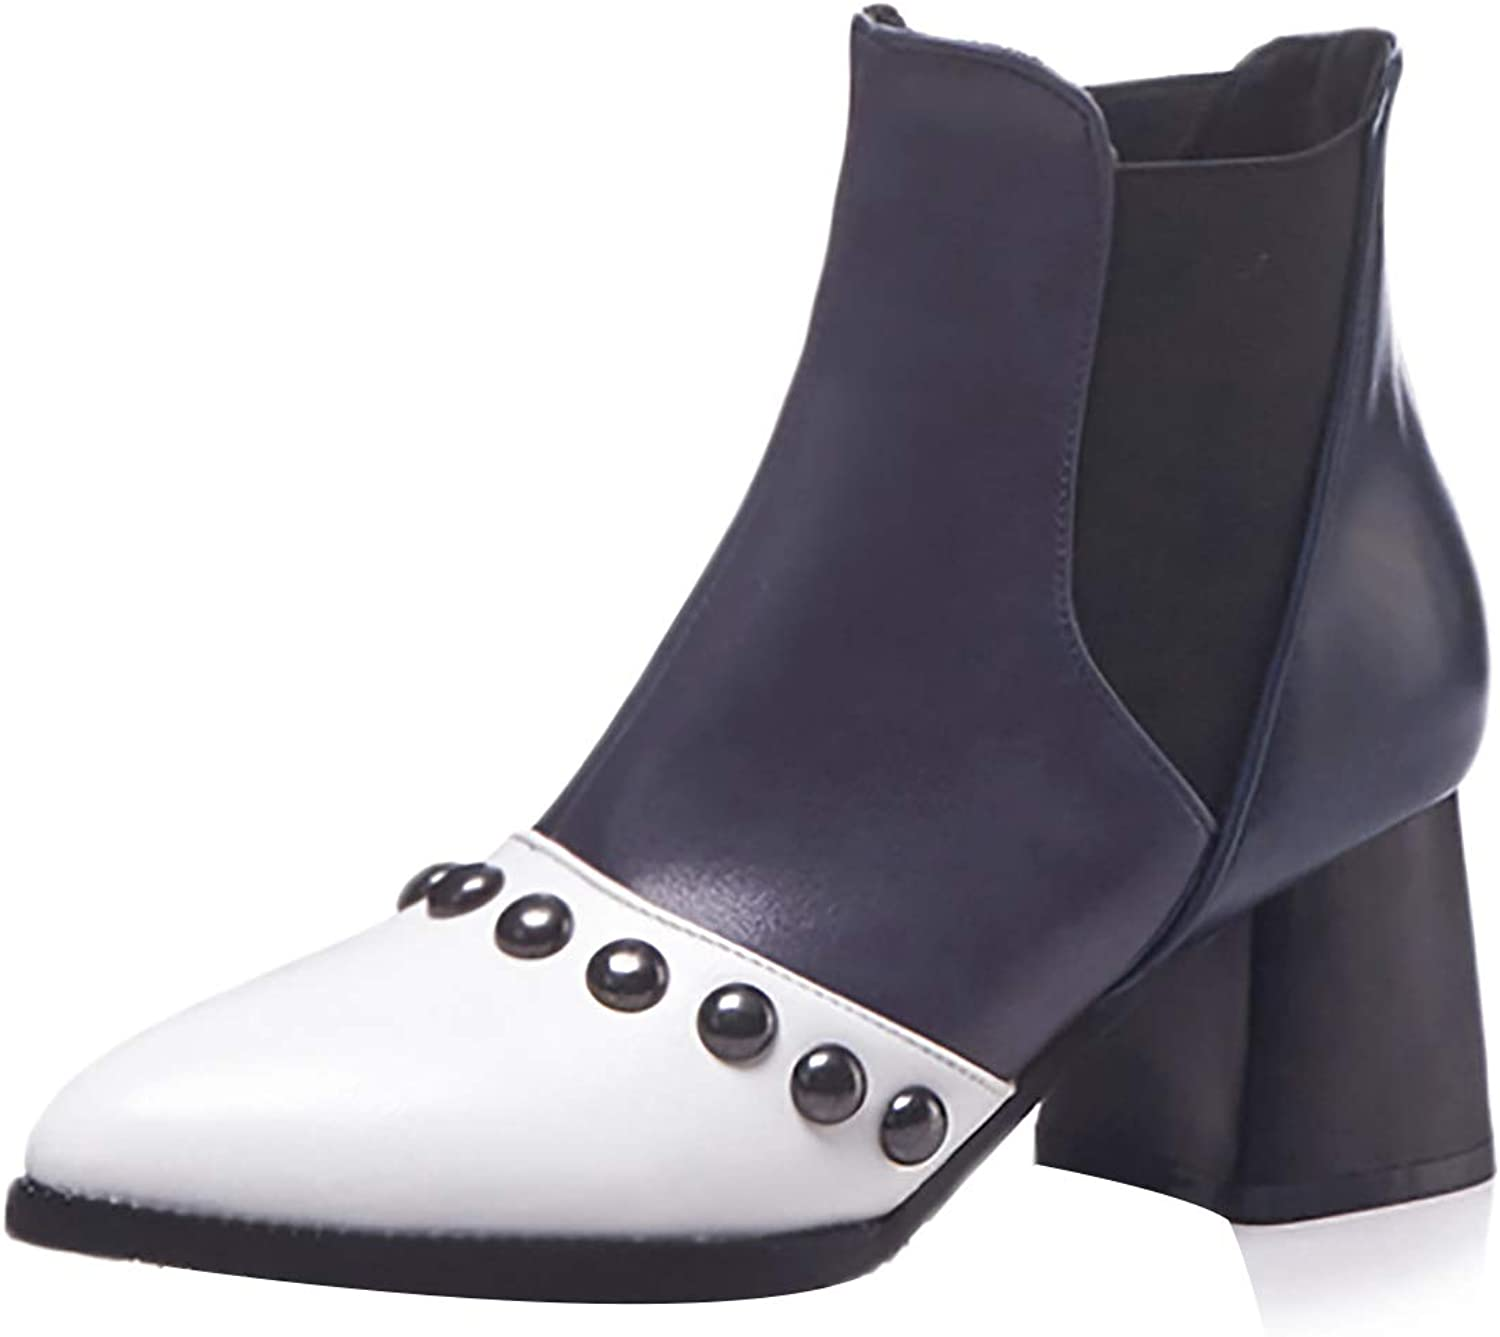 Jushee Womens Juinten 6 cm mid-Heel Ankle Pull-on Patent-Leather Boots